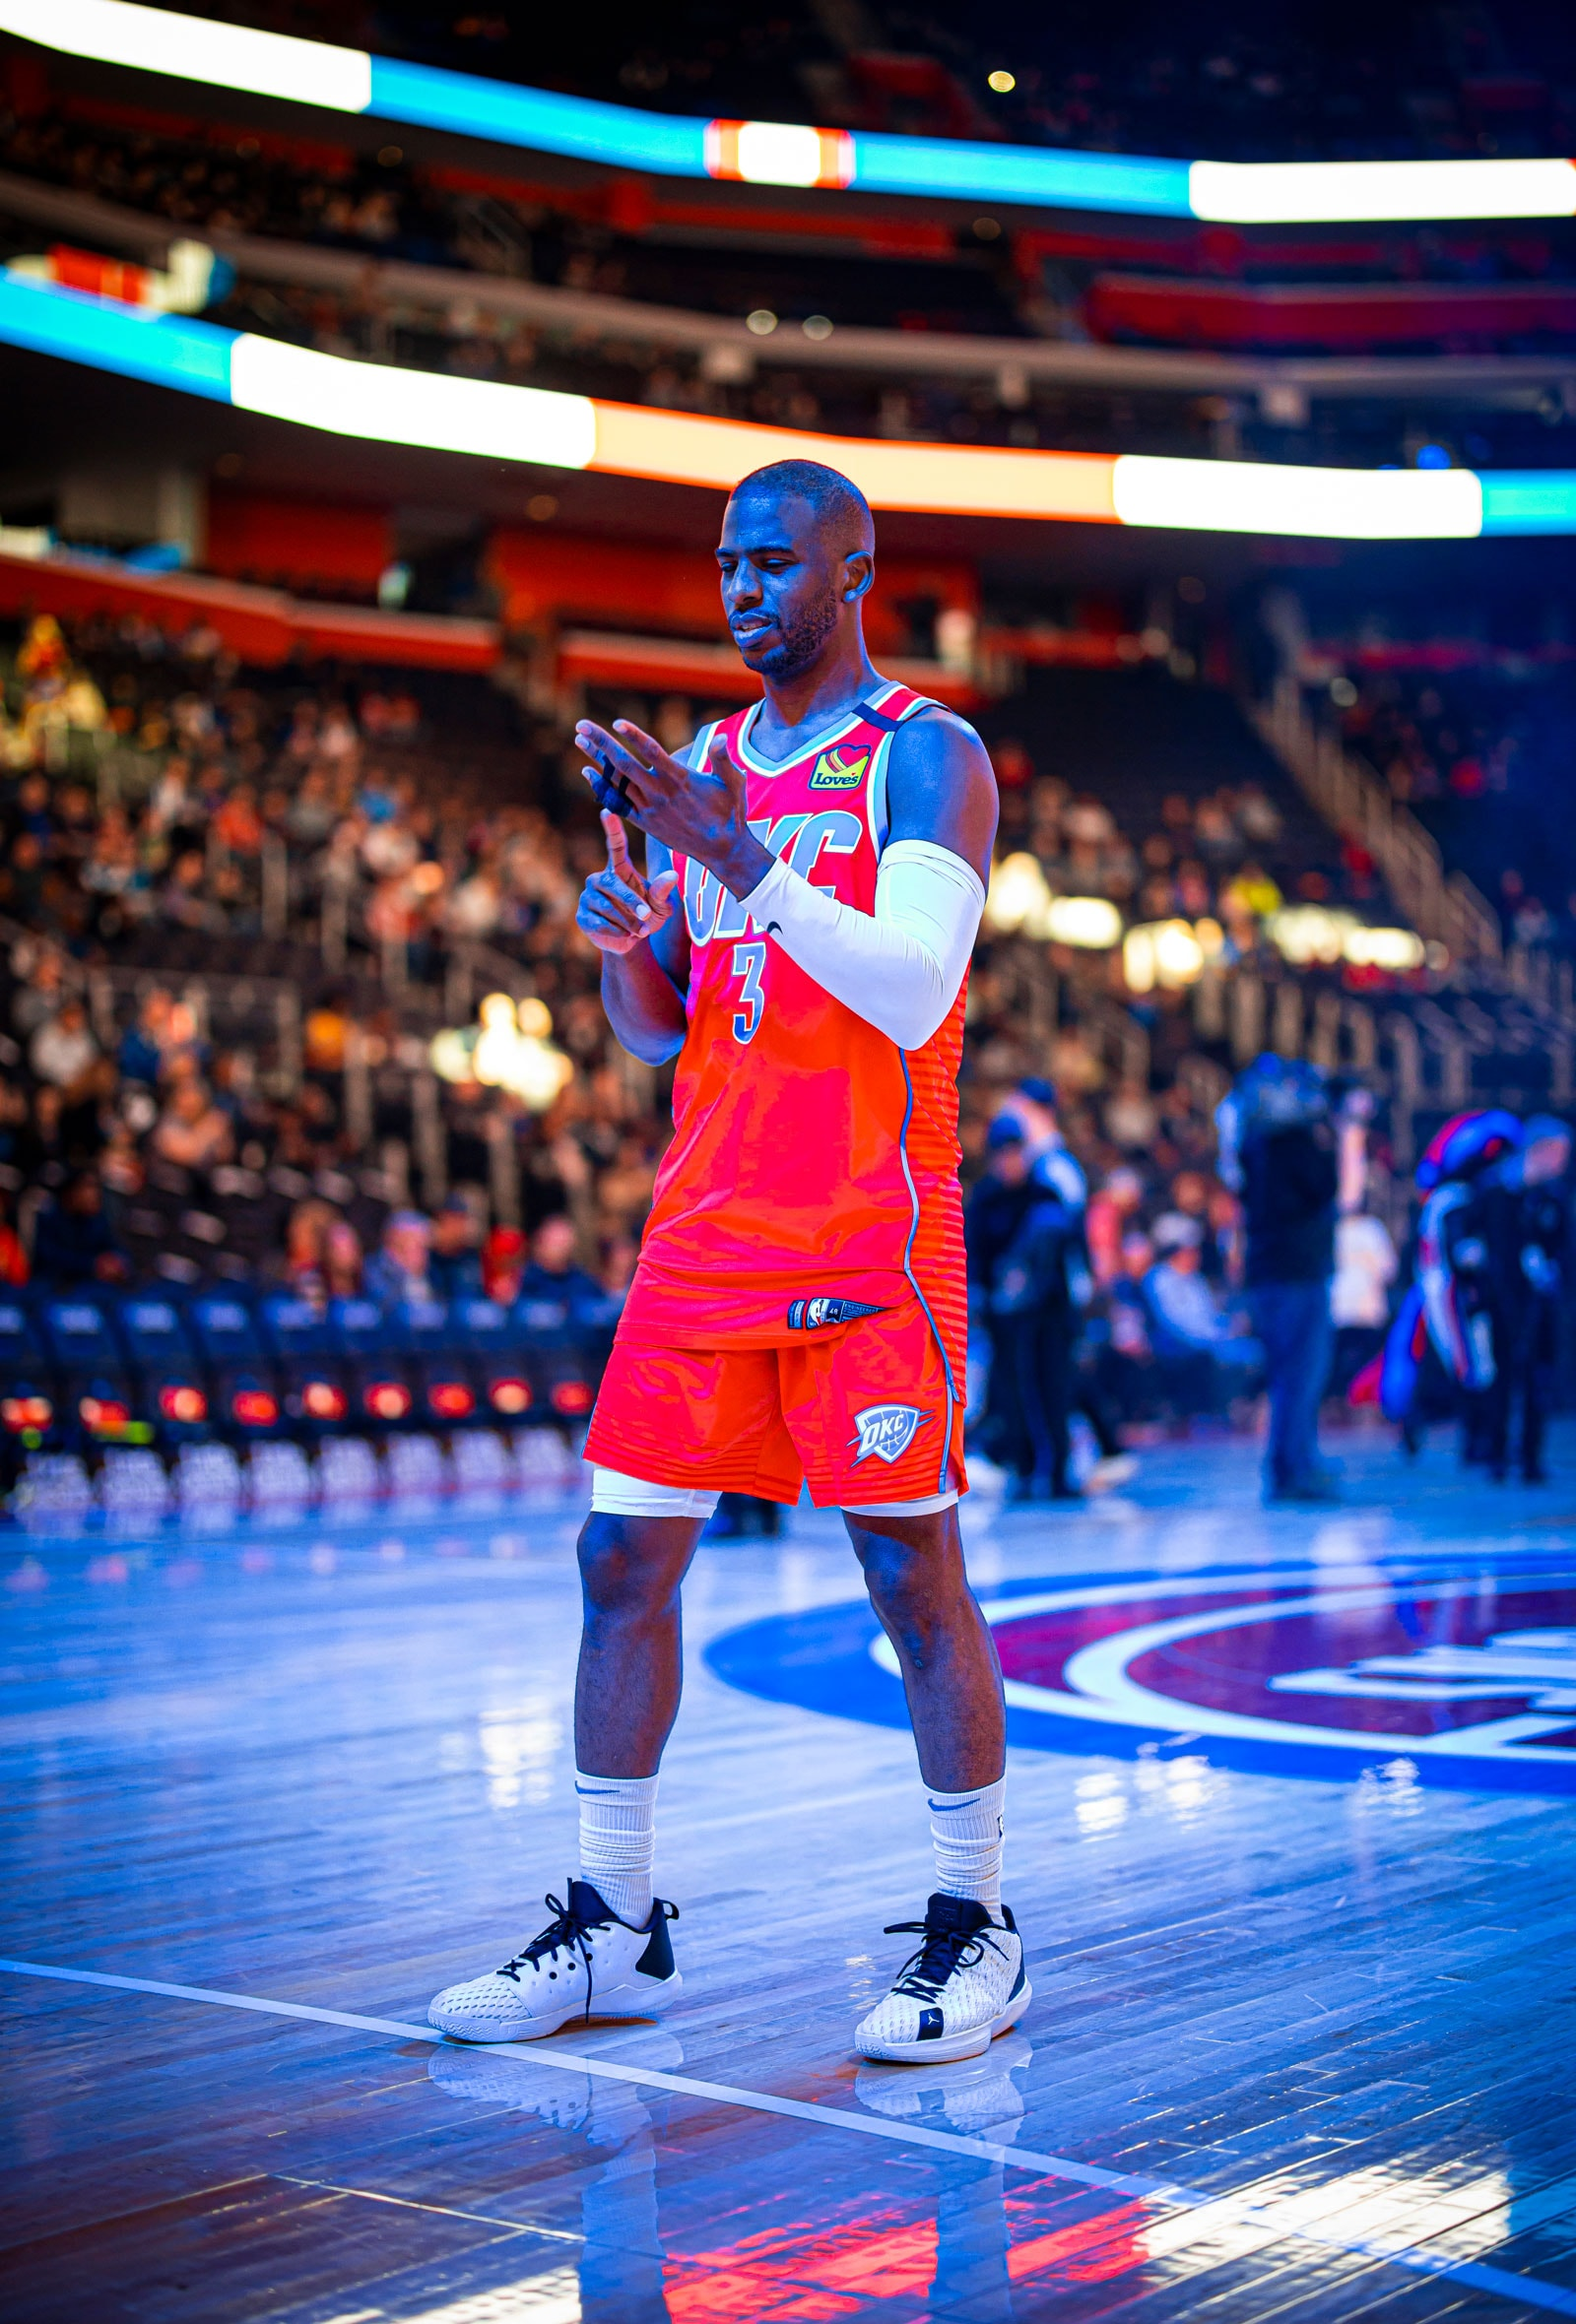 Chris Paul #3 of the Oklahoma City Thunder looks on during the game against the Detroit Pistons on March 4, 2020 at Chesapeake Energy Arena in Oklahoma City, Oklahoma.